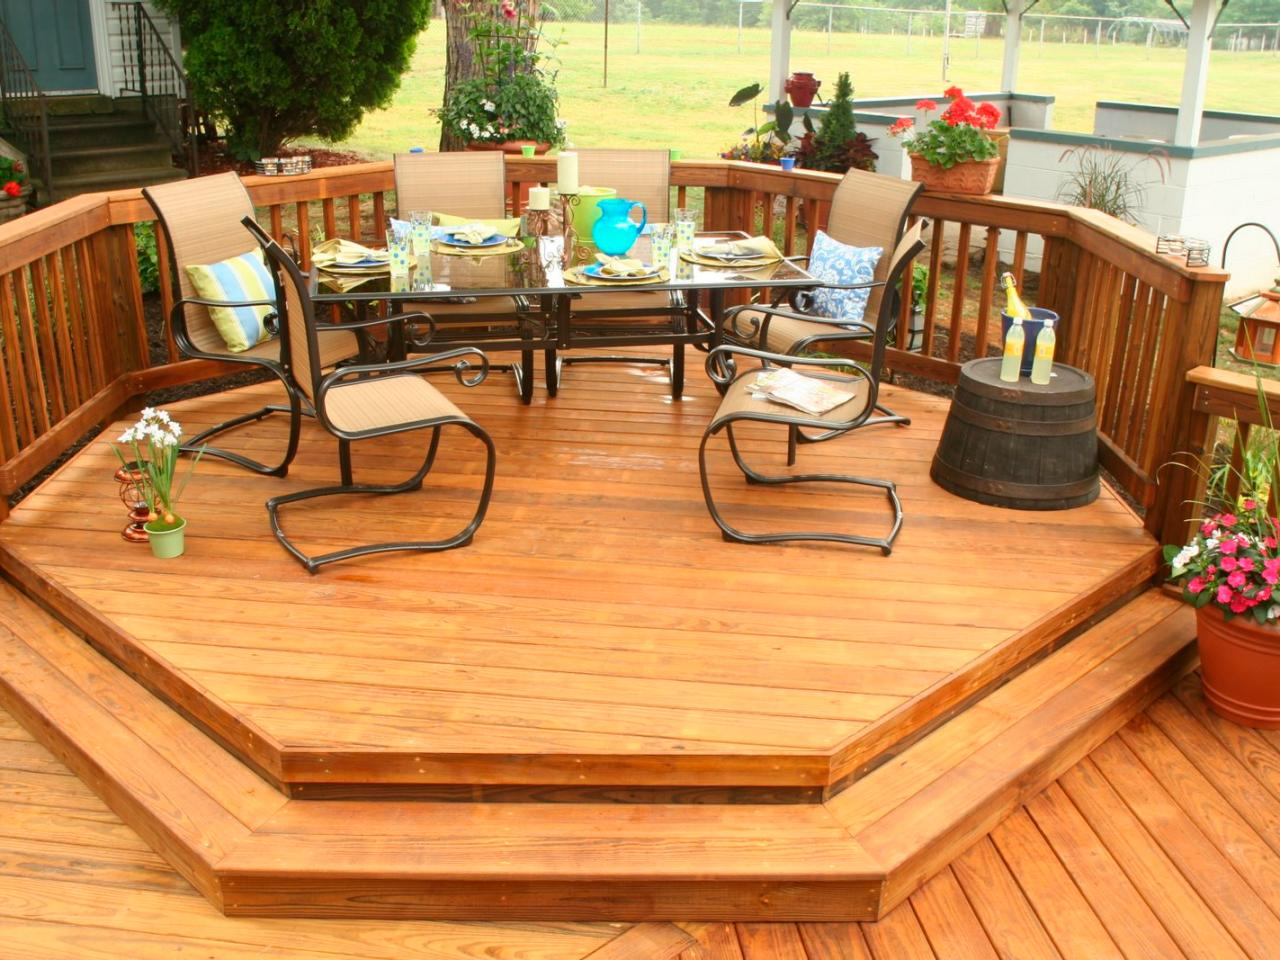 Deck Designs Ideas Pictures – Patio Deck Plans Pictures